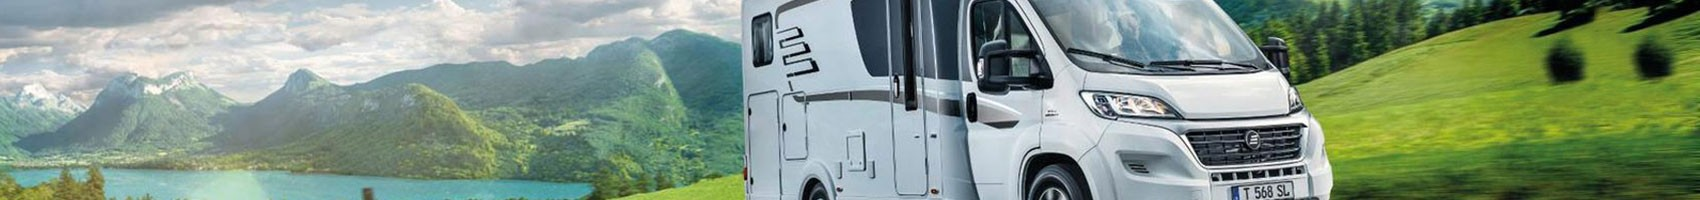 Fire Safety for Your Motorhome